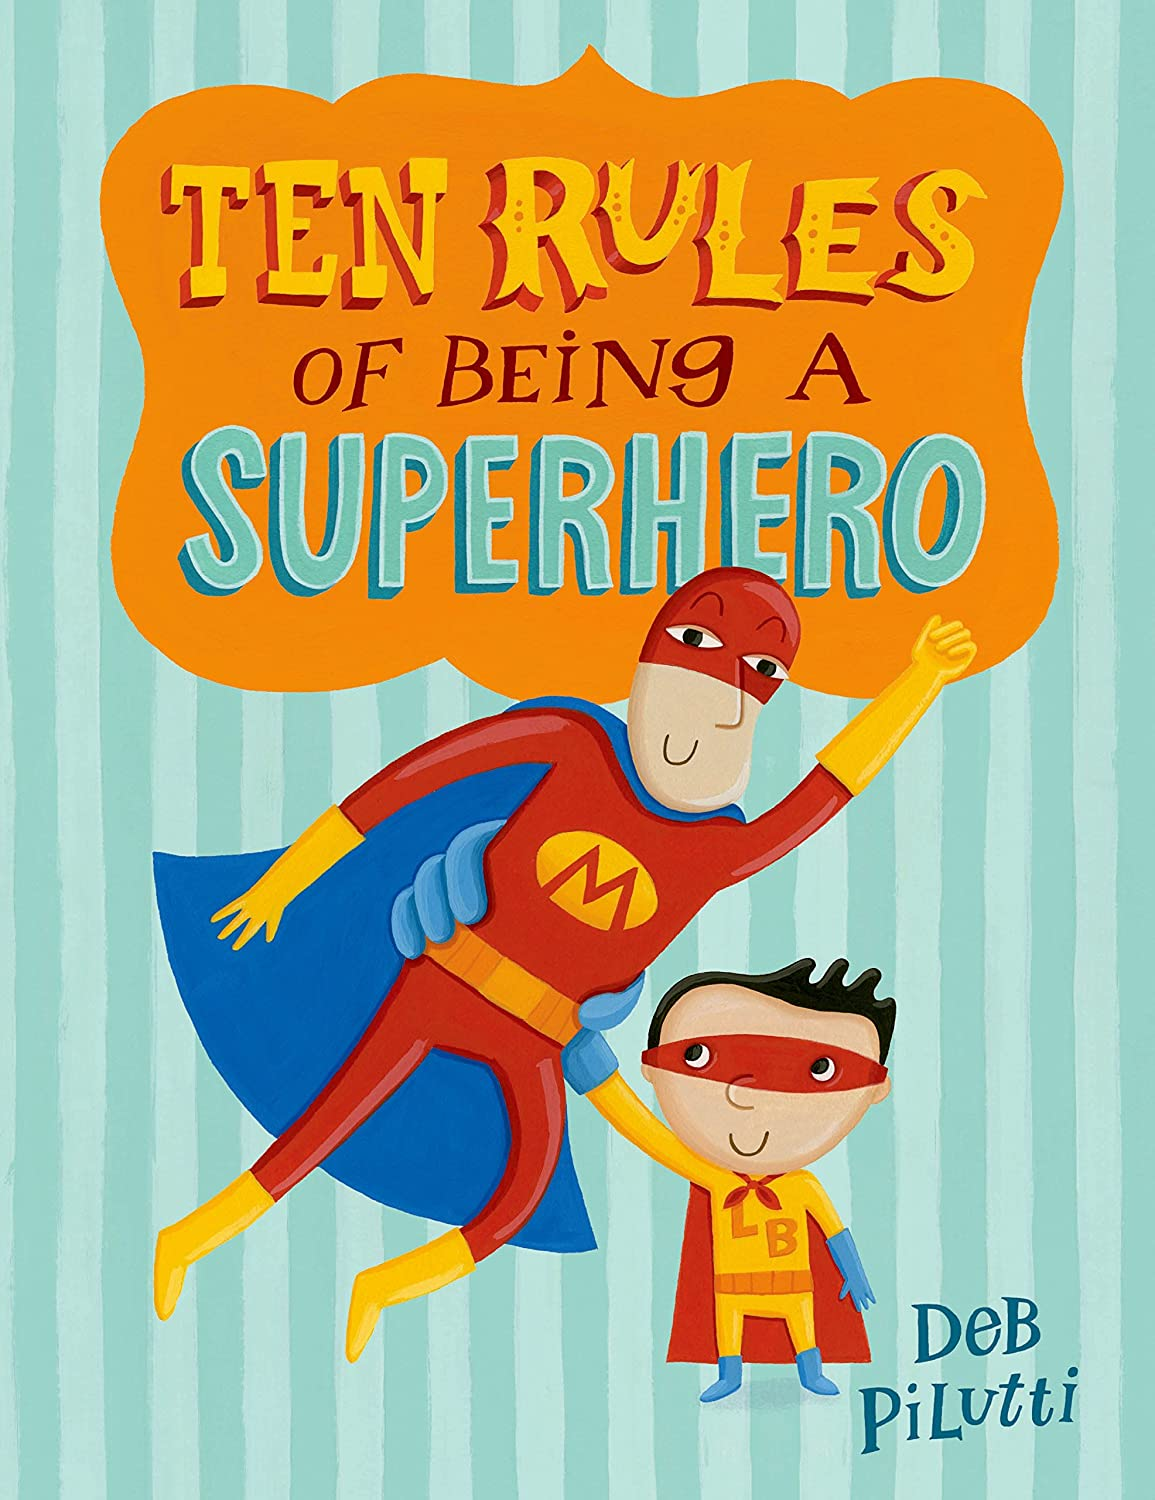 Book Reviews by Tima: Ten Rules of Being a Superhero